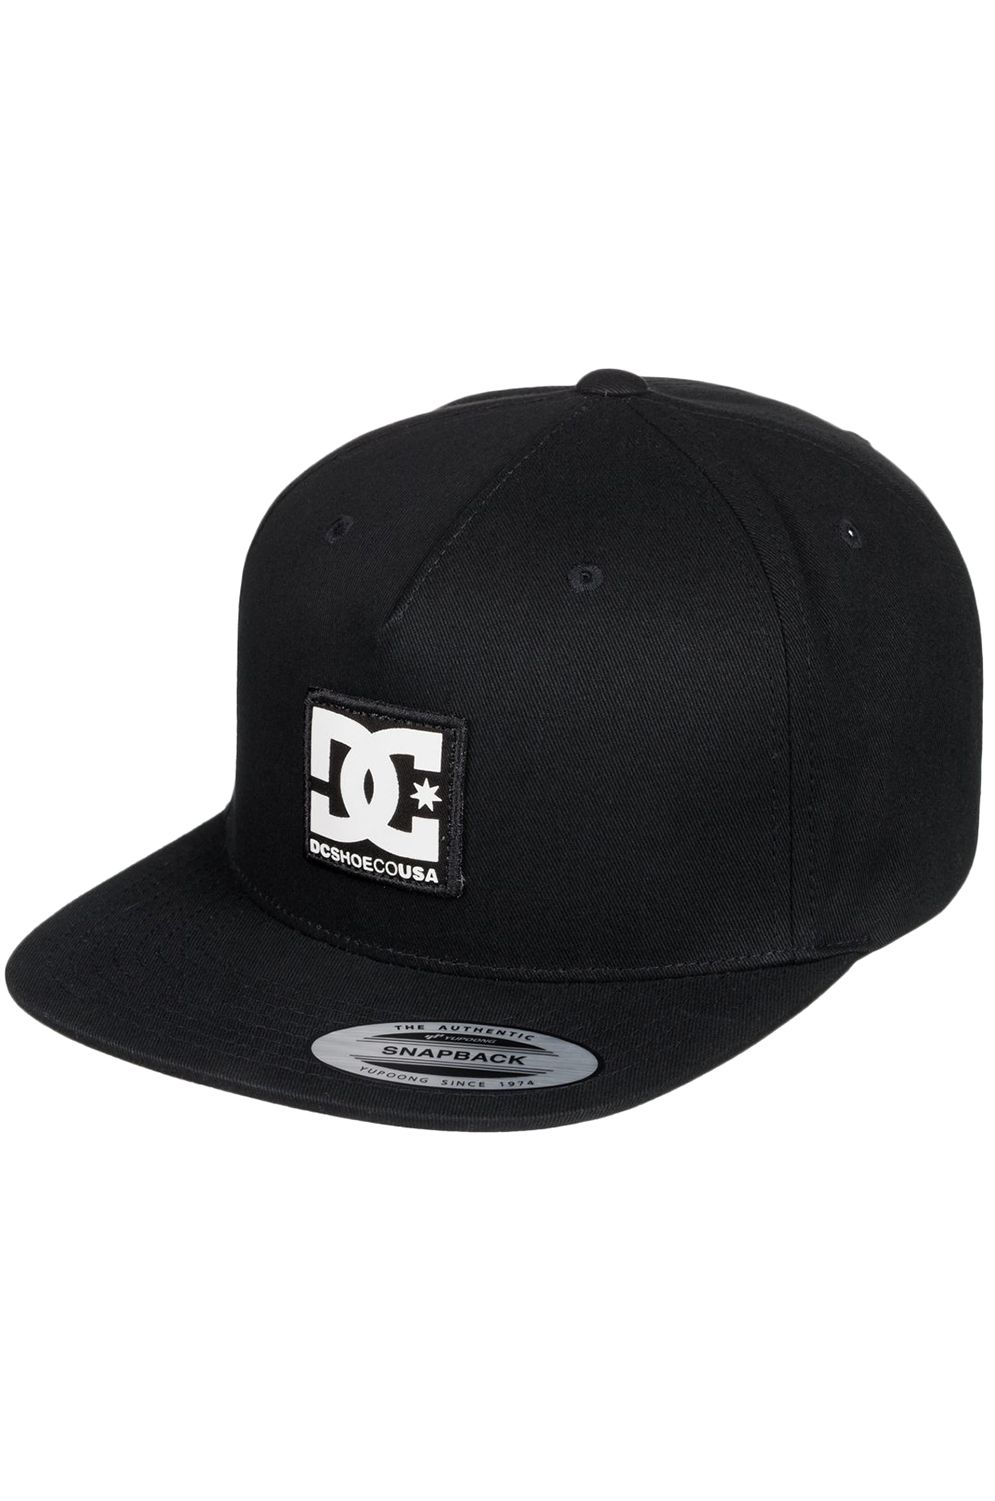 Bone DC Shoes SNAPDRIPP Black